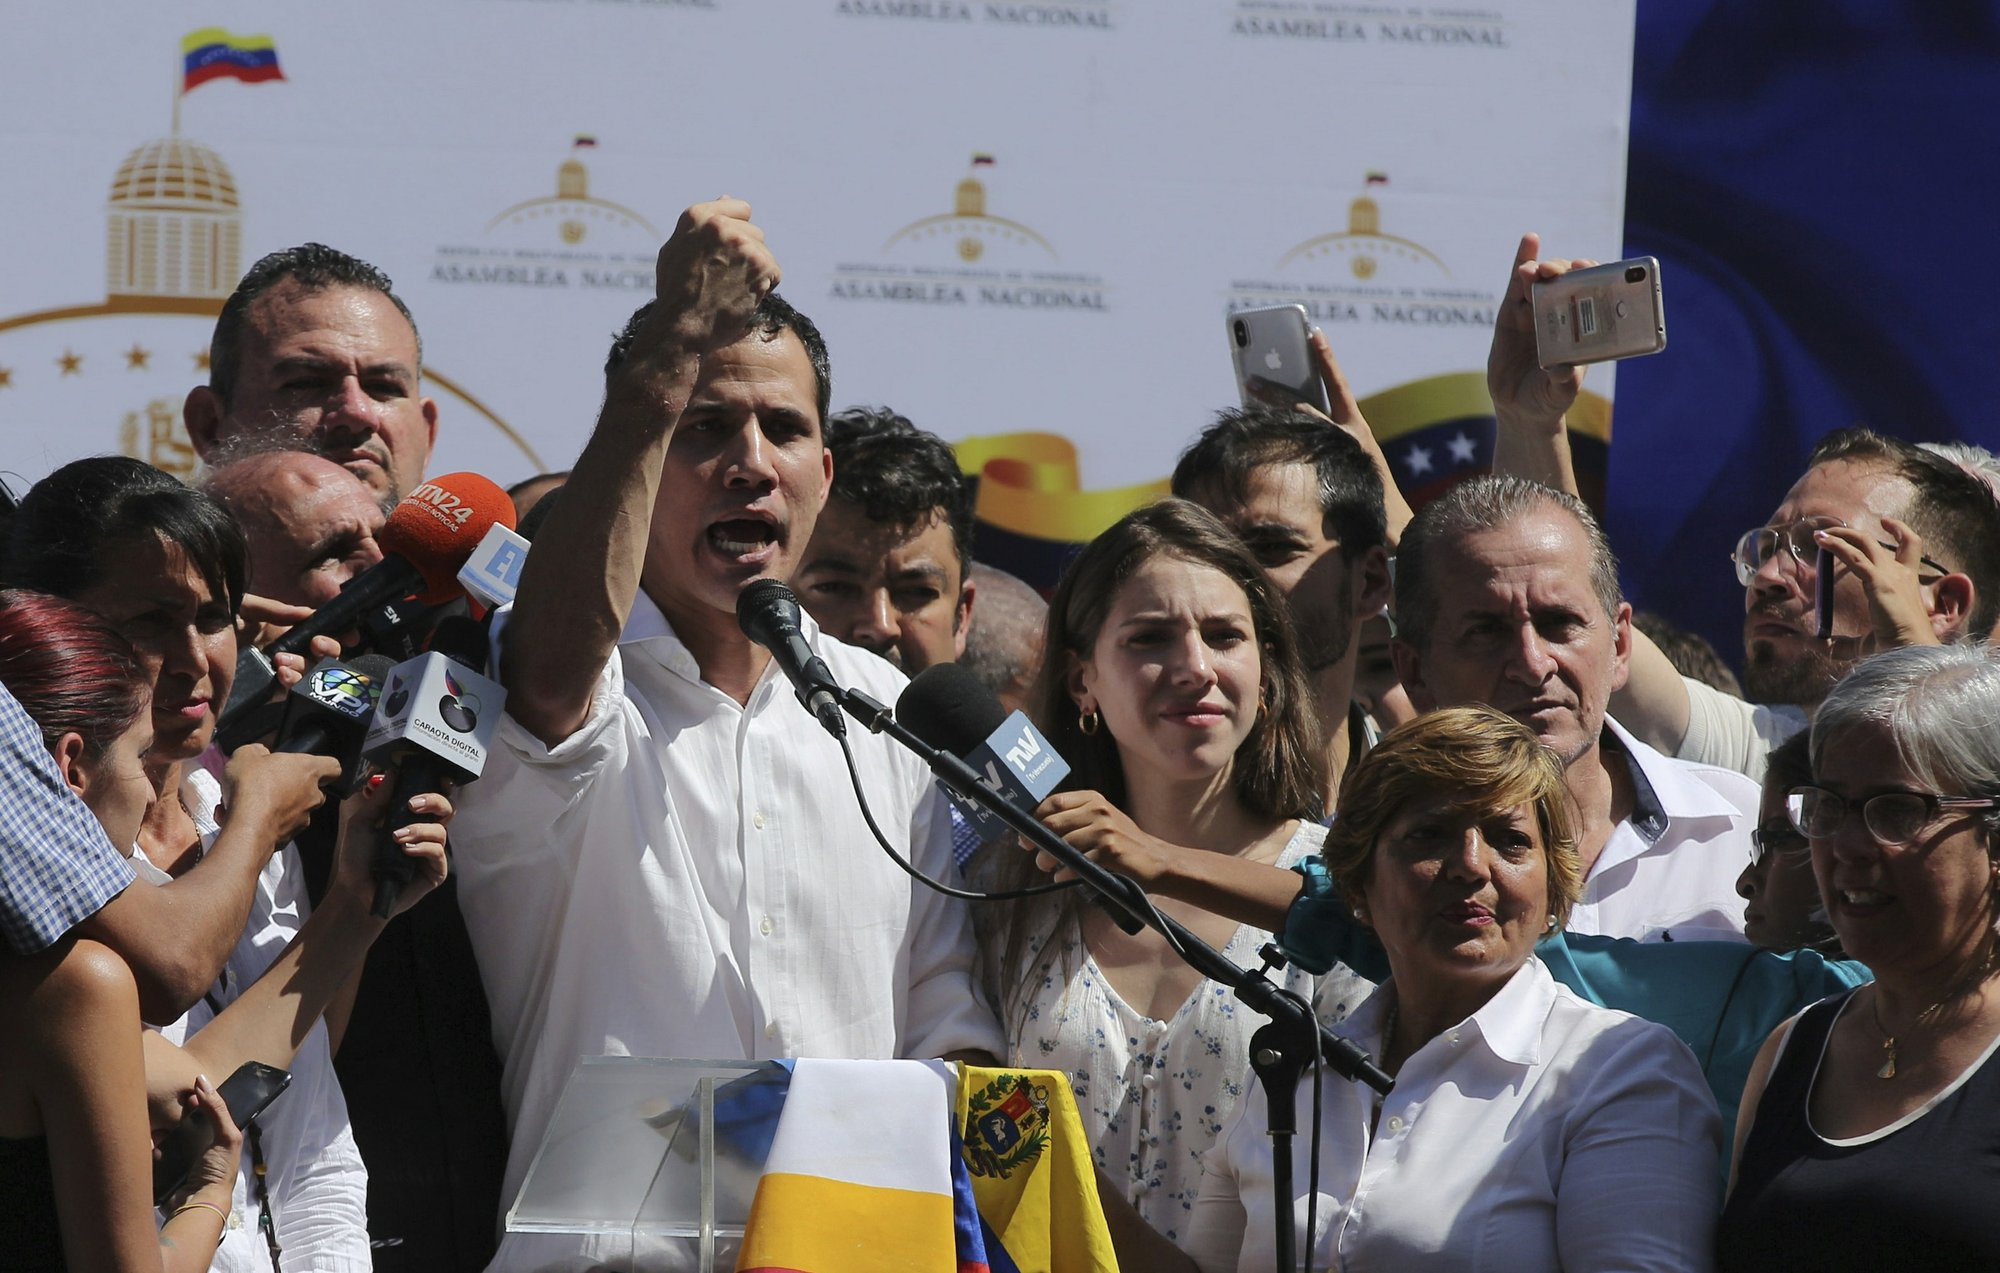 US recognizes Venezuelan opposition leader as nation's 'interim president'